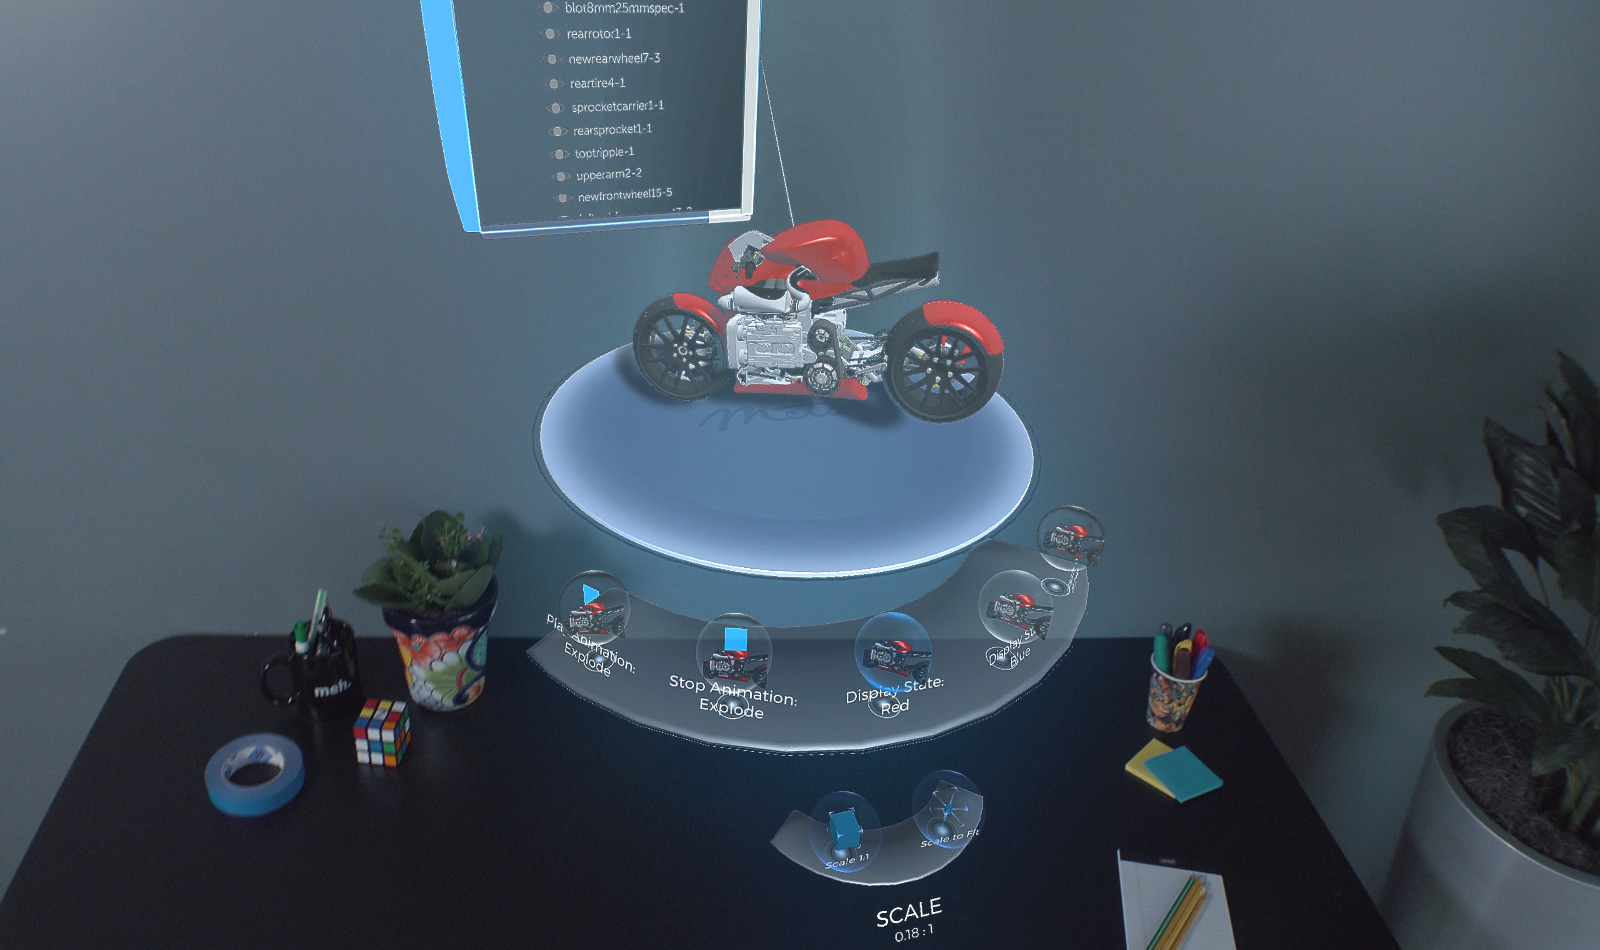 SOLIDWORKS and Meta Customers Can View Their 3D CAD Models in